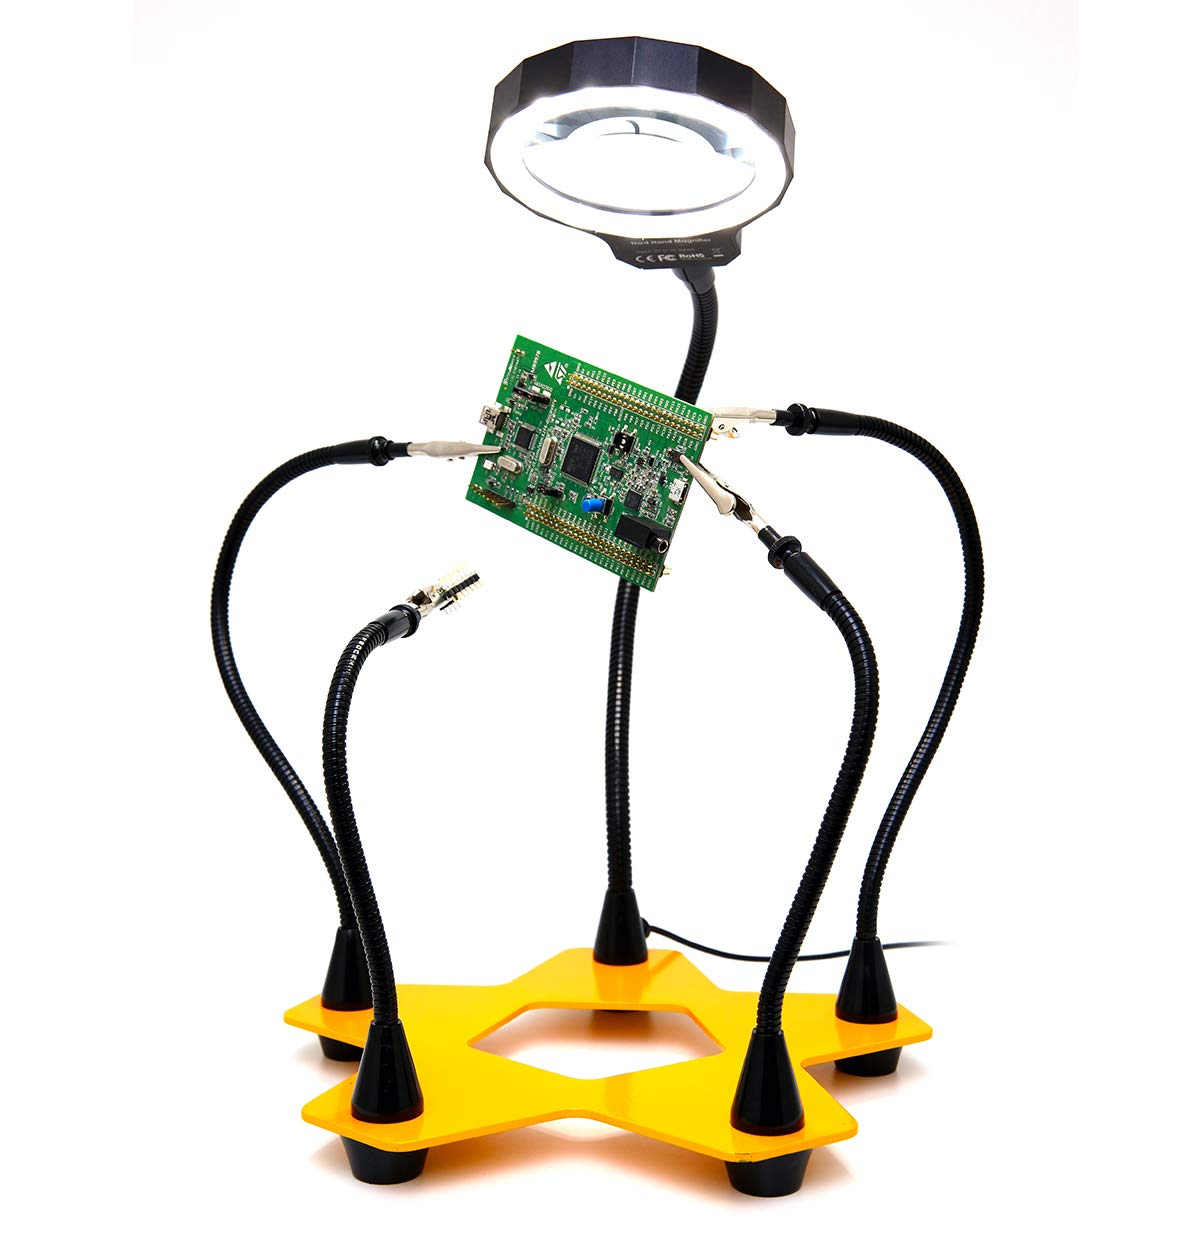 Third Hand Soldering PCB Holder Tool Quad Arms 3x LED Magnifying Helping Hands Crafts Jewelry Hobby Workshop Helping Station Non-slip Metal weighted base by Fstop Labs (Image #1)